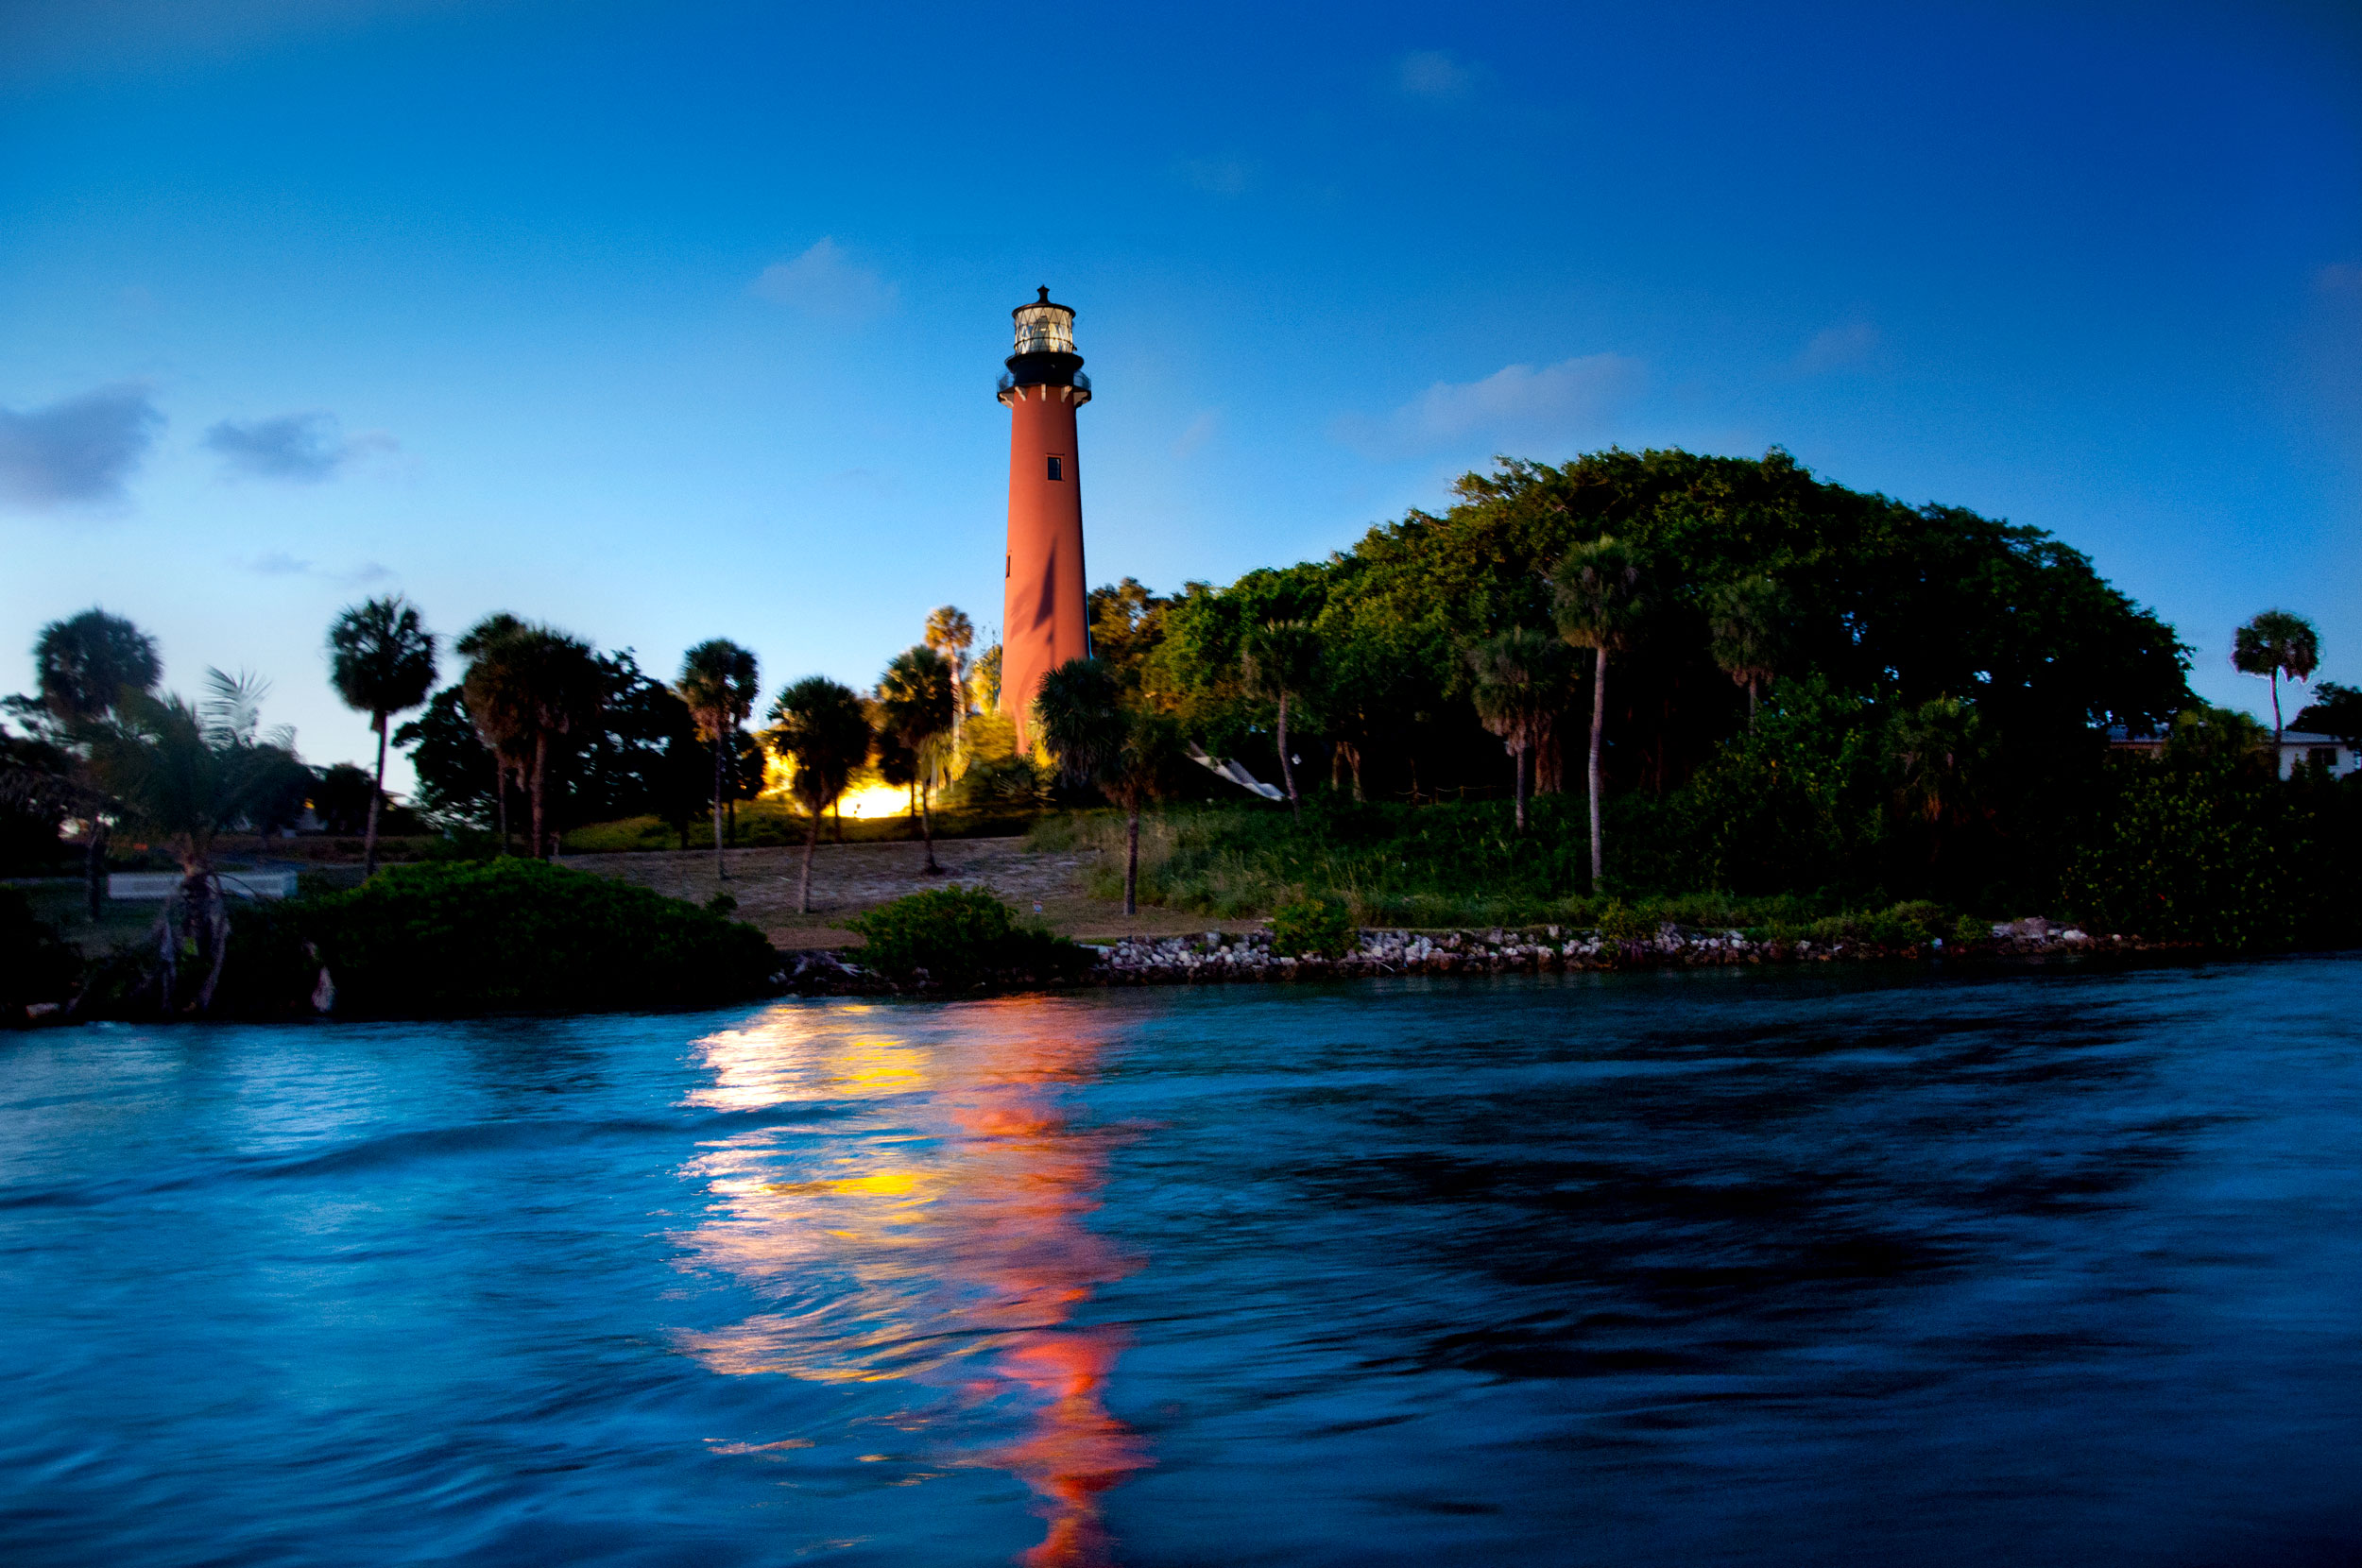 Jupiter Inlet Lighthouse & Museum - Learn about the diverse history of our area through series of interactive exhibits chronicling the lives of Native Americans, early pioneers, Lighthouse keepers and more. Nature lovers should not miss the Jupiter Inlet Lighthouse Outstanding Natural Area, which features 120 acres of rich Florida wilderness. Jupiter Inlet Lighthouse & Museum Website